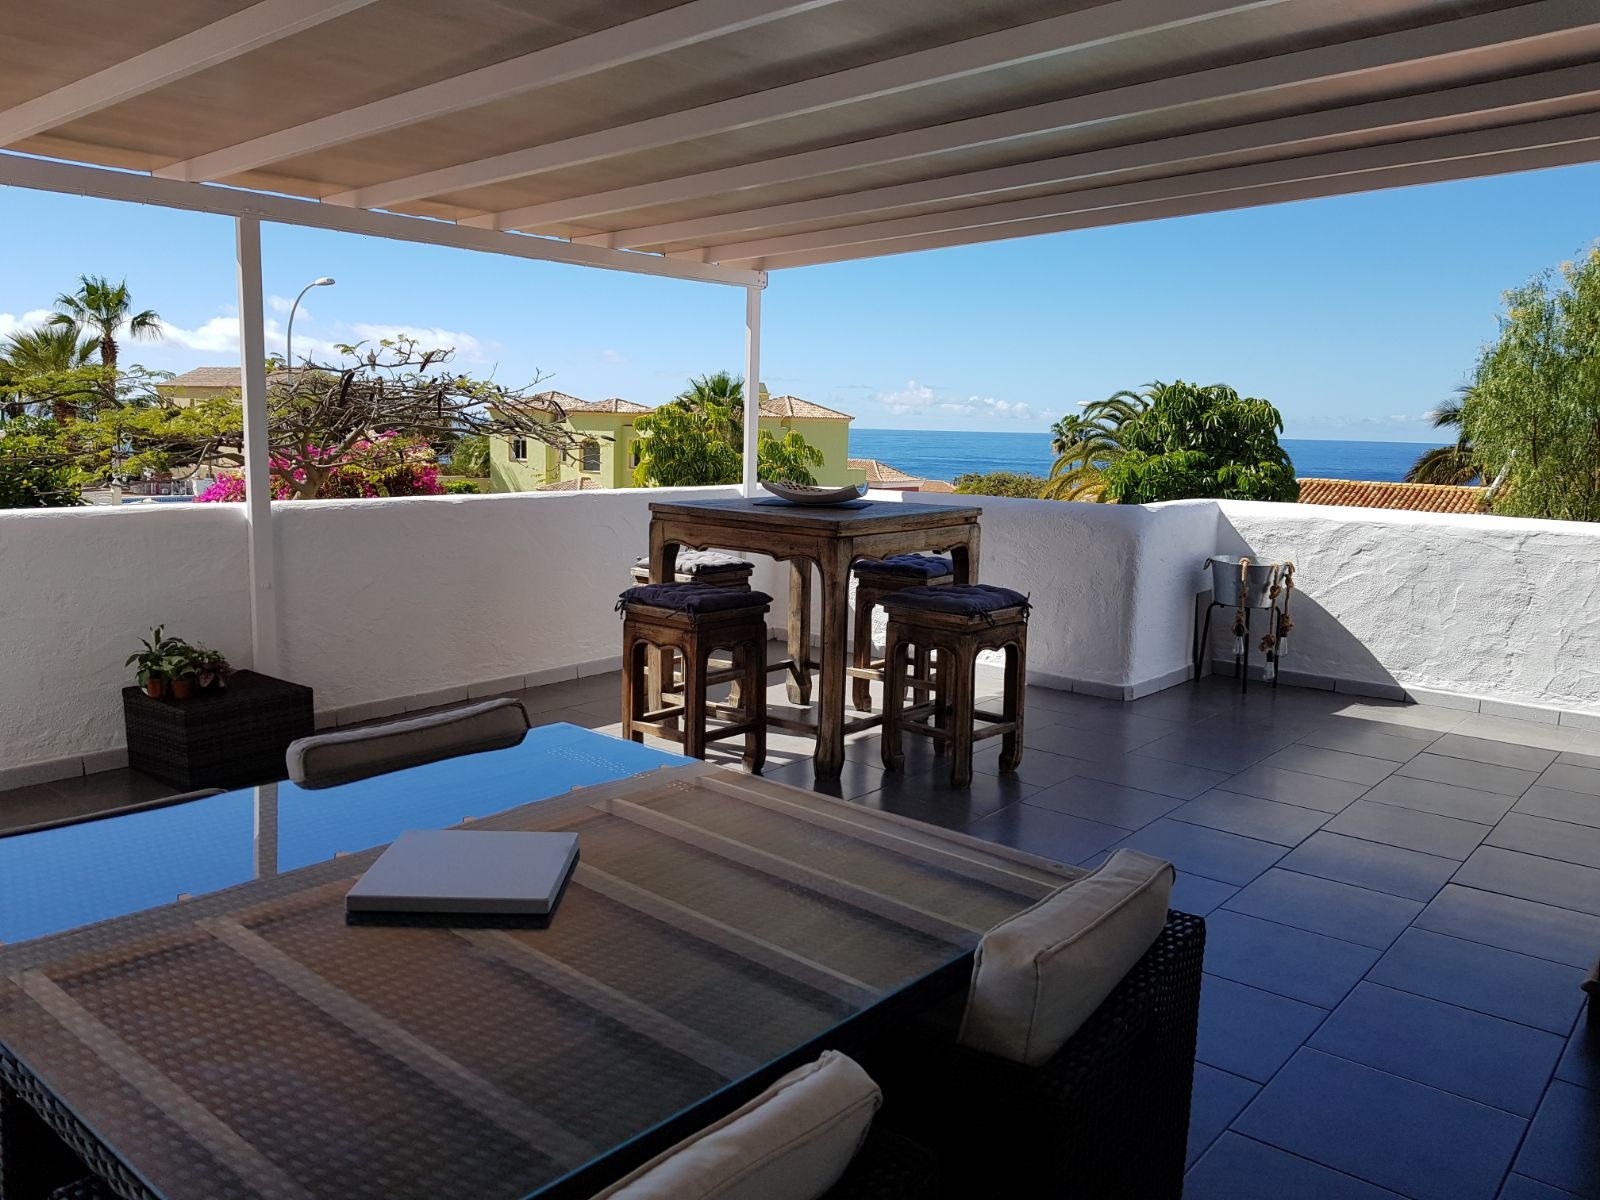 Properties for Sale in Tenerife, Canary Islands, Spain | SylkWayStar Real Estate. Villa 5 bedrooms Playa Paraiso. Image-25656